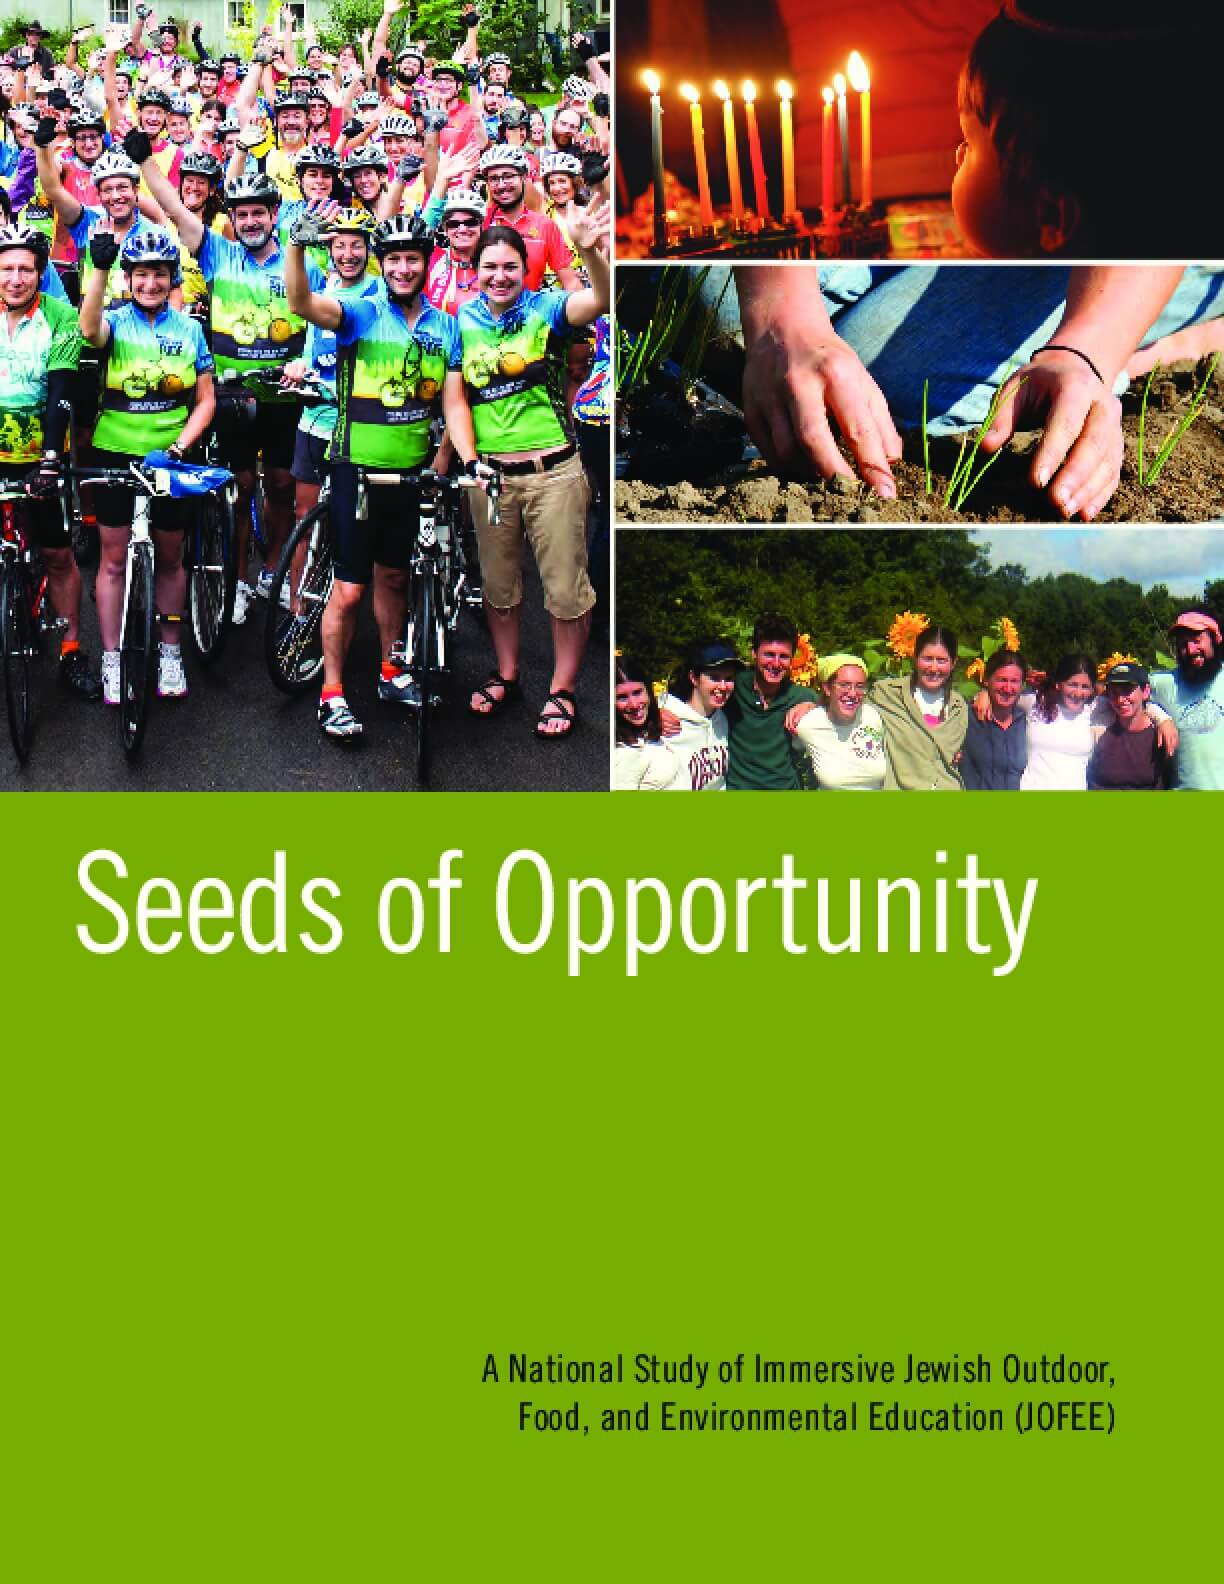 Seeds of Opportunity: A National Study of Immersive Jewish Outdoor, Food, and Environmental Education (JOFEE)